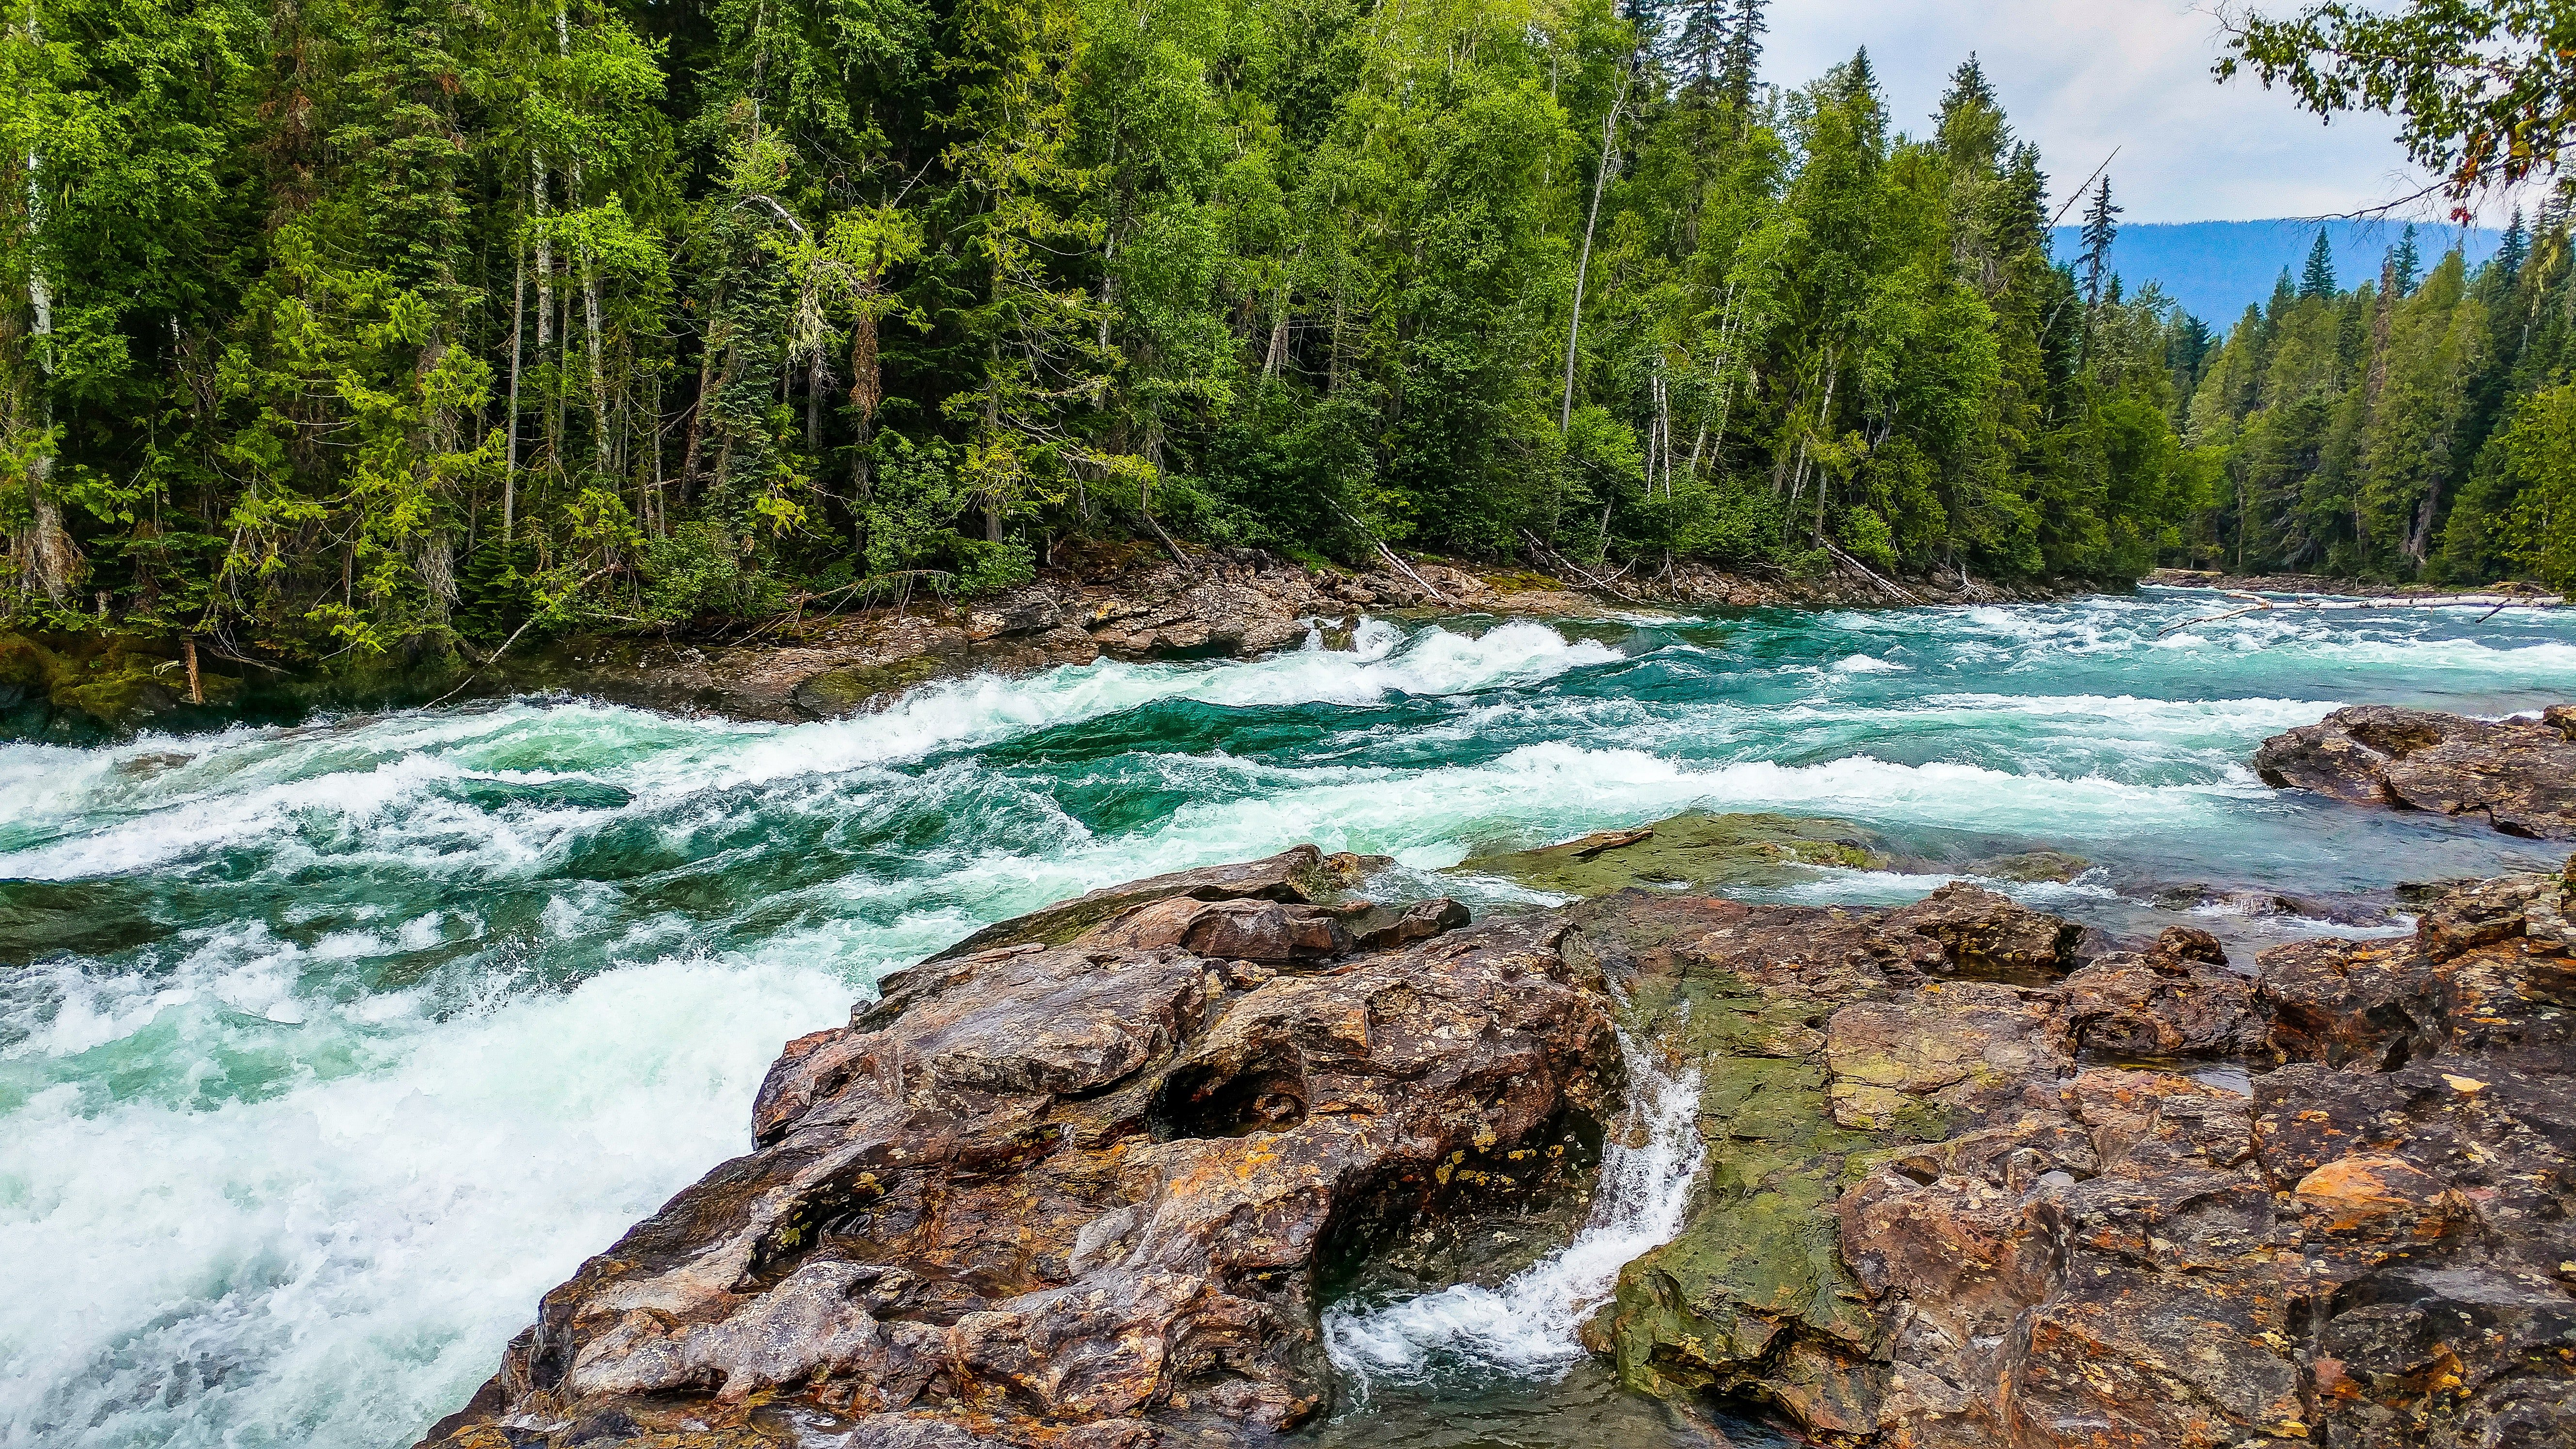 water flowing down river with rocky shore